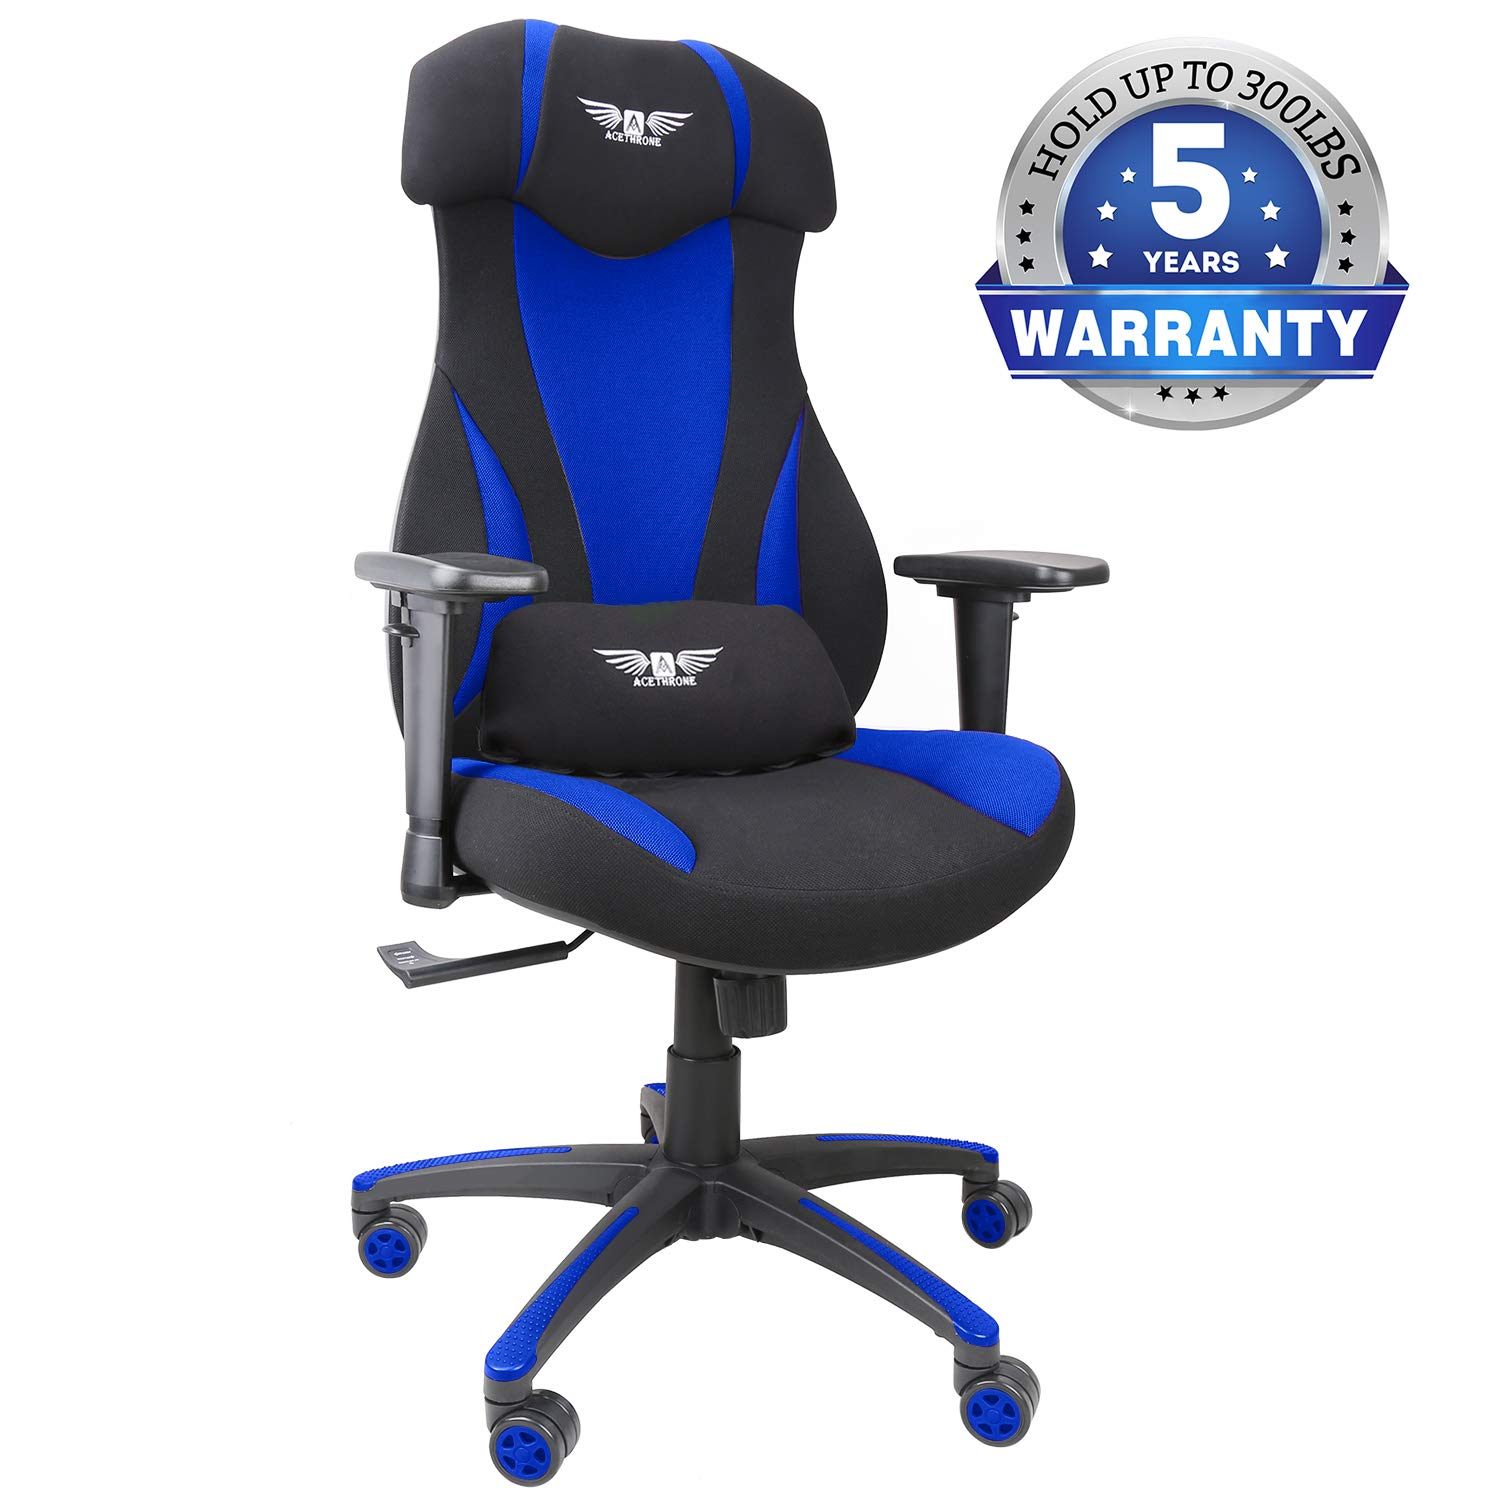 Mesh Gaming Chairs, Racing Style Office Chair Ergonomic Computer Desk Chairs with Lift Headrest and Armrest, Flexible Adjustable Height and Reclining Device